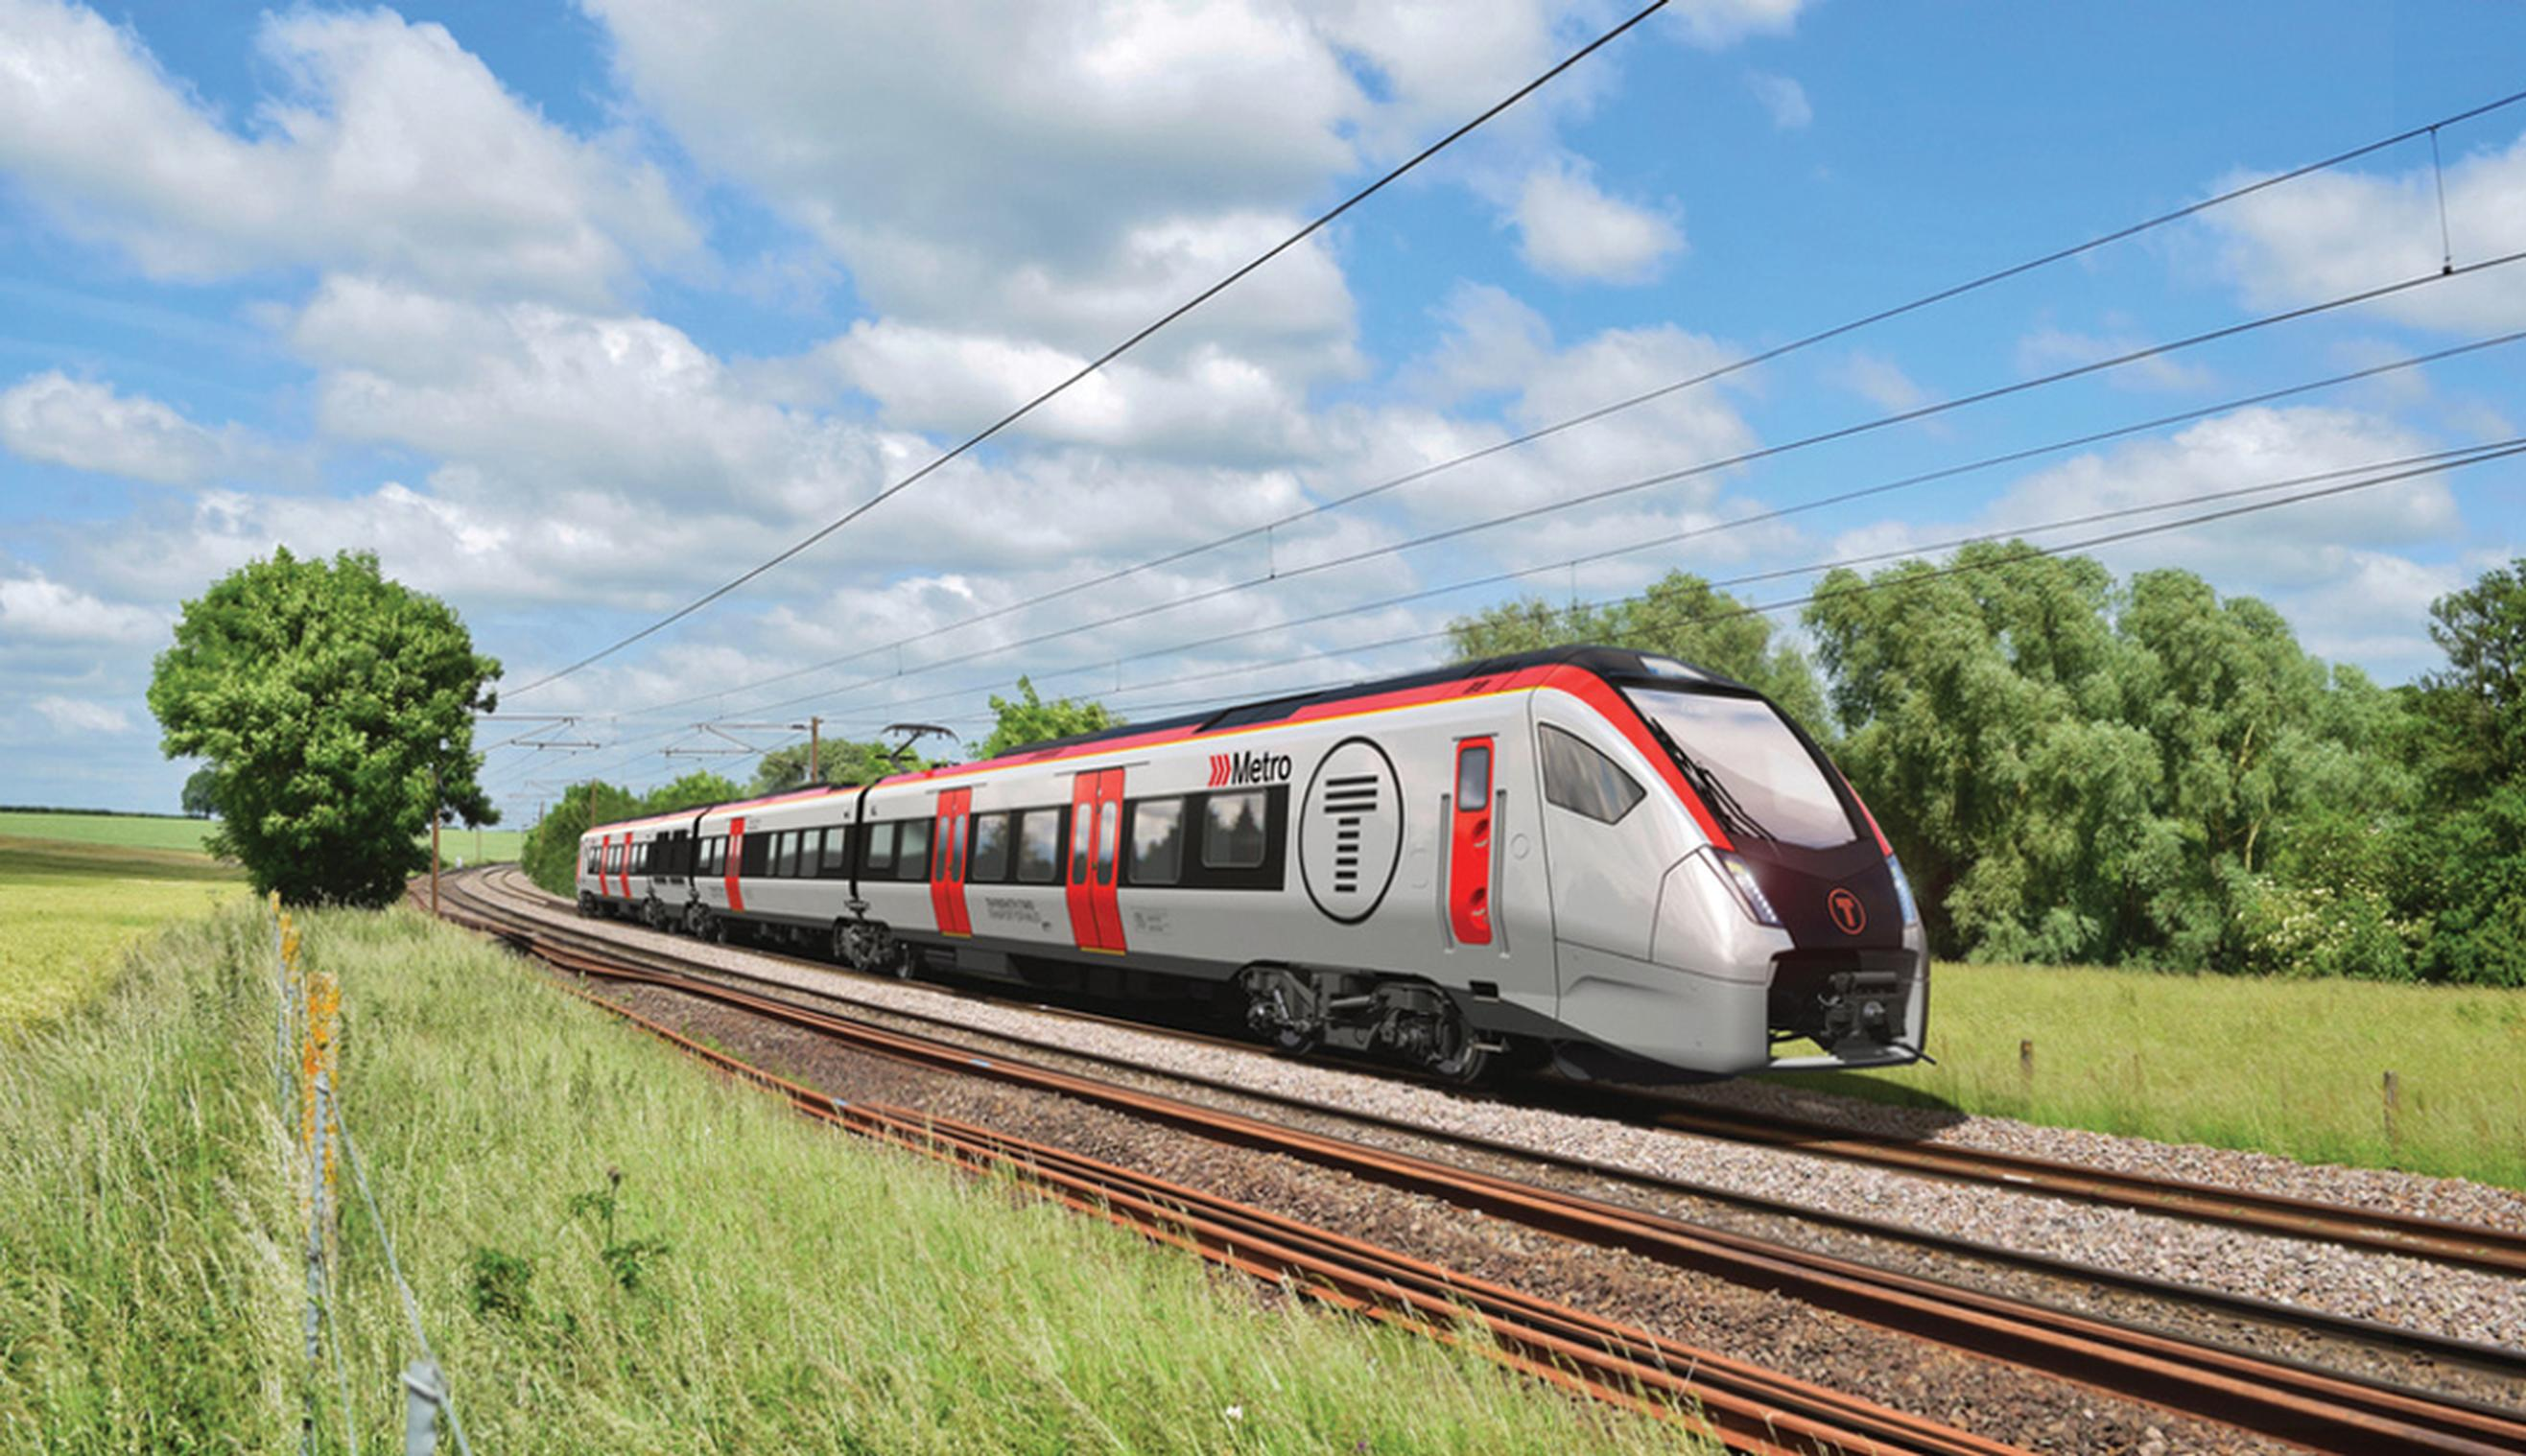 Stadler will build a fleet of tri-mode trains (pictured) and light rail vehicles for local services around Cardiff